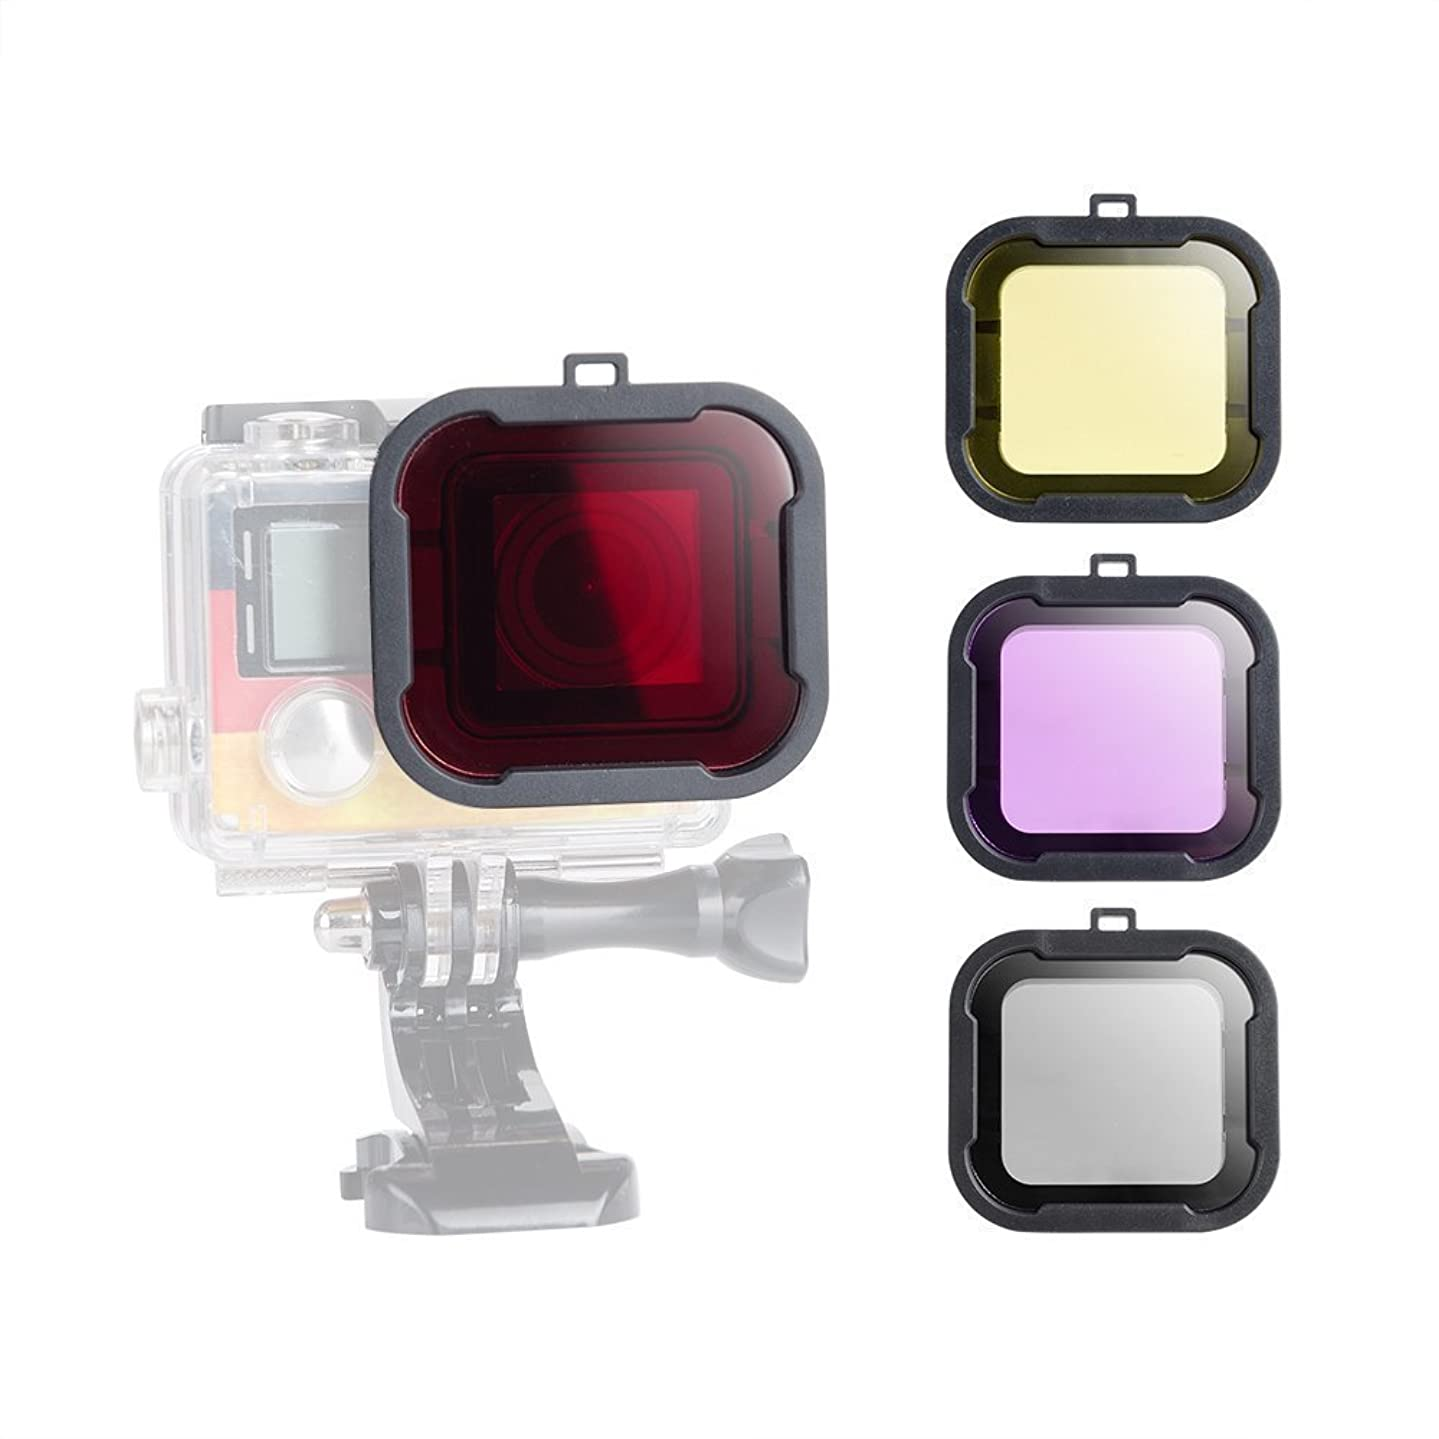 Williamcr 4 Pack Diving Lens Filters for GoPro Hero 4 3+ Color Correction Compensation Filters for Underwater Video Photography Filming - Red Yellow Purple Grey